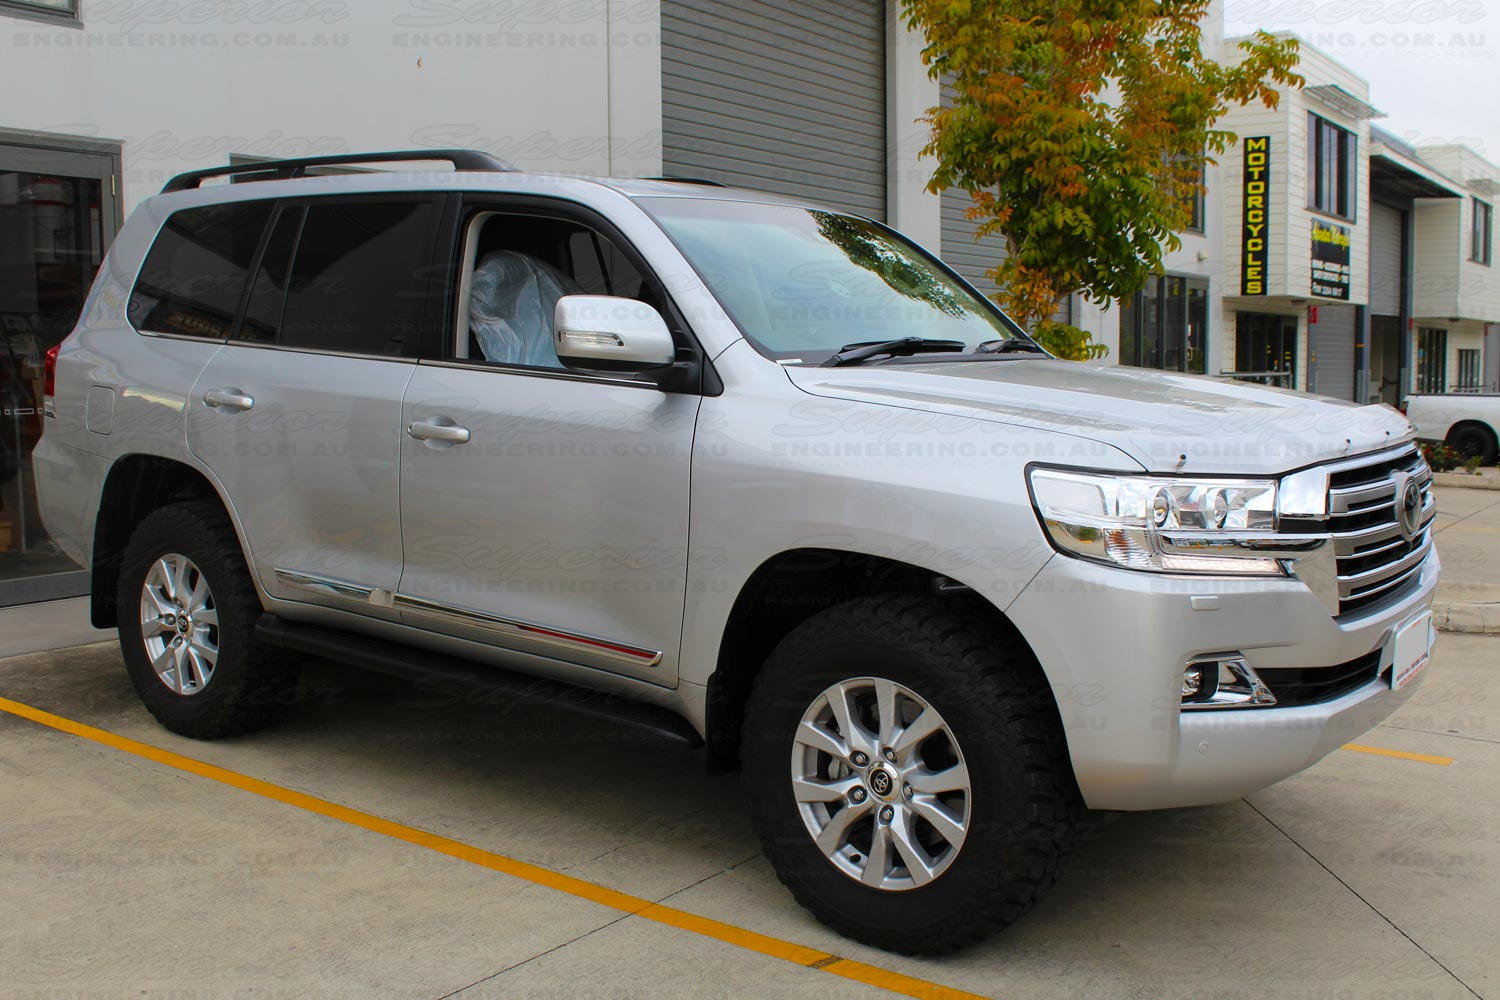 Left side view of a Toyota Landcruiser 200 Series after fitting the Superior Diff Drop kit